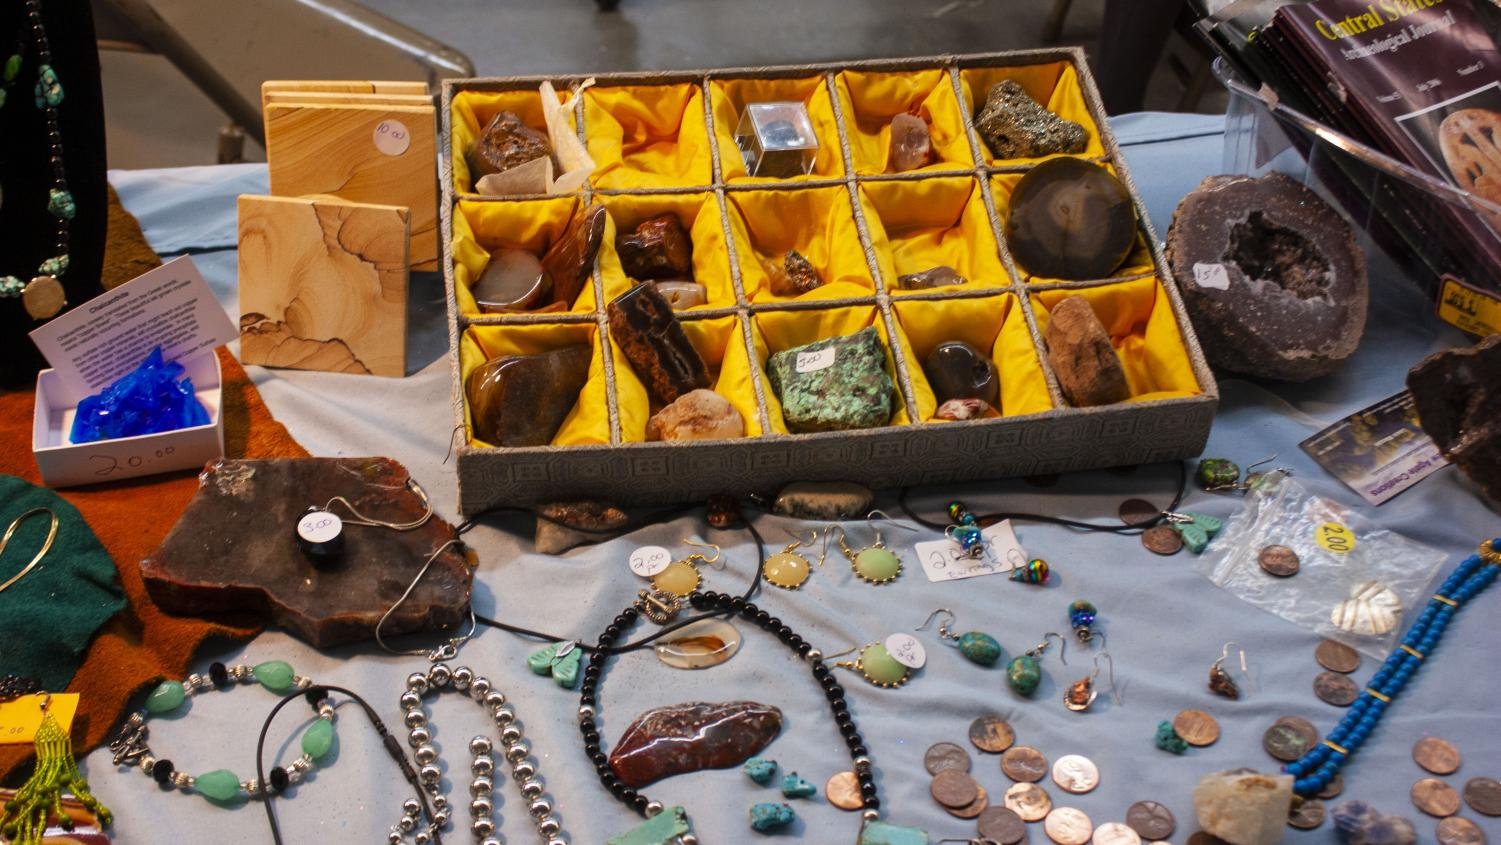 The+Eau+Claire+expo+center+was+filled+with+colorful+displays+of+rocks%2C+gems%2C+and+jewelry+at+the+56th+Annual+Chippewa+Valley+Gem+and+Mineral+Society+show+and+sale.+